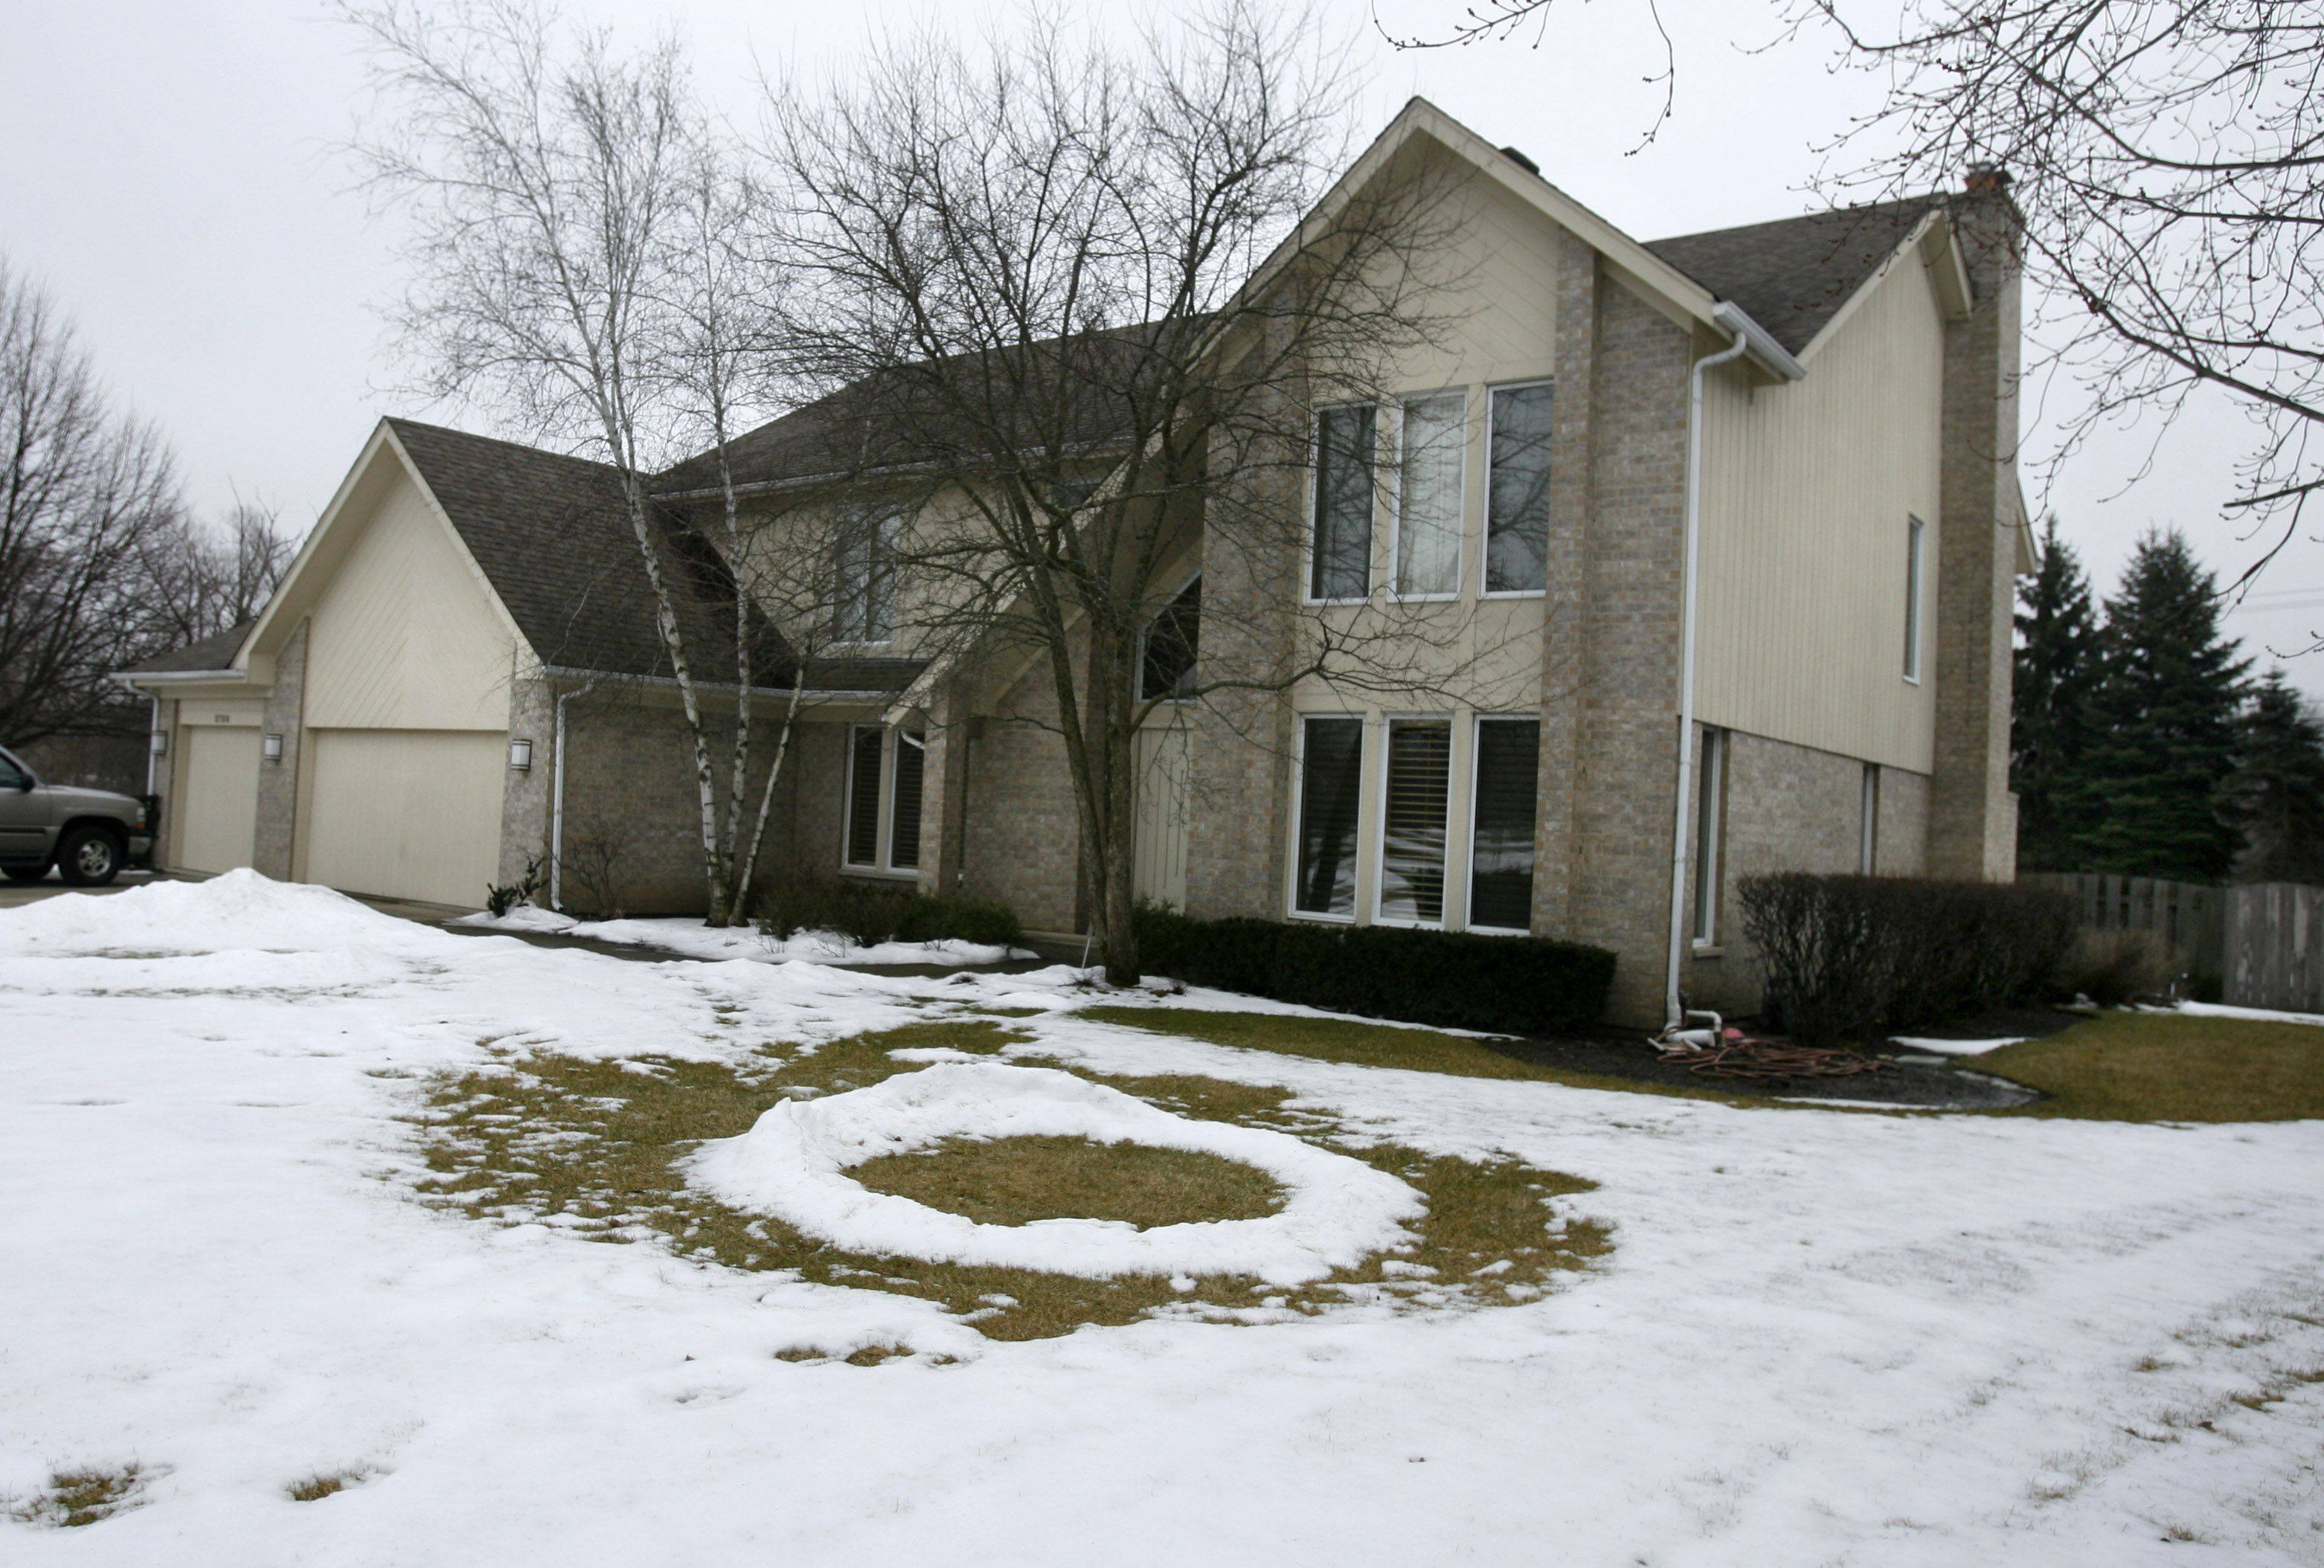 This home on Acacia Court South is typical of houses found in the Sterling Green neighborhood of Buffalo Grove.